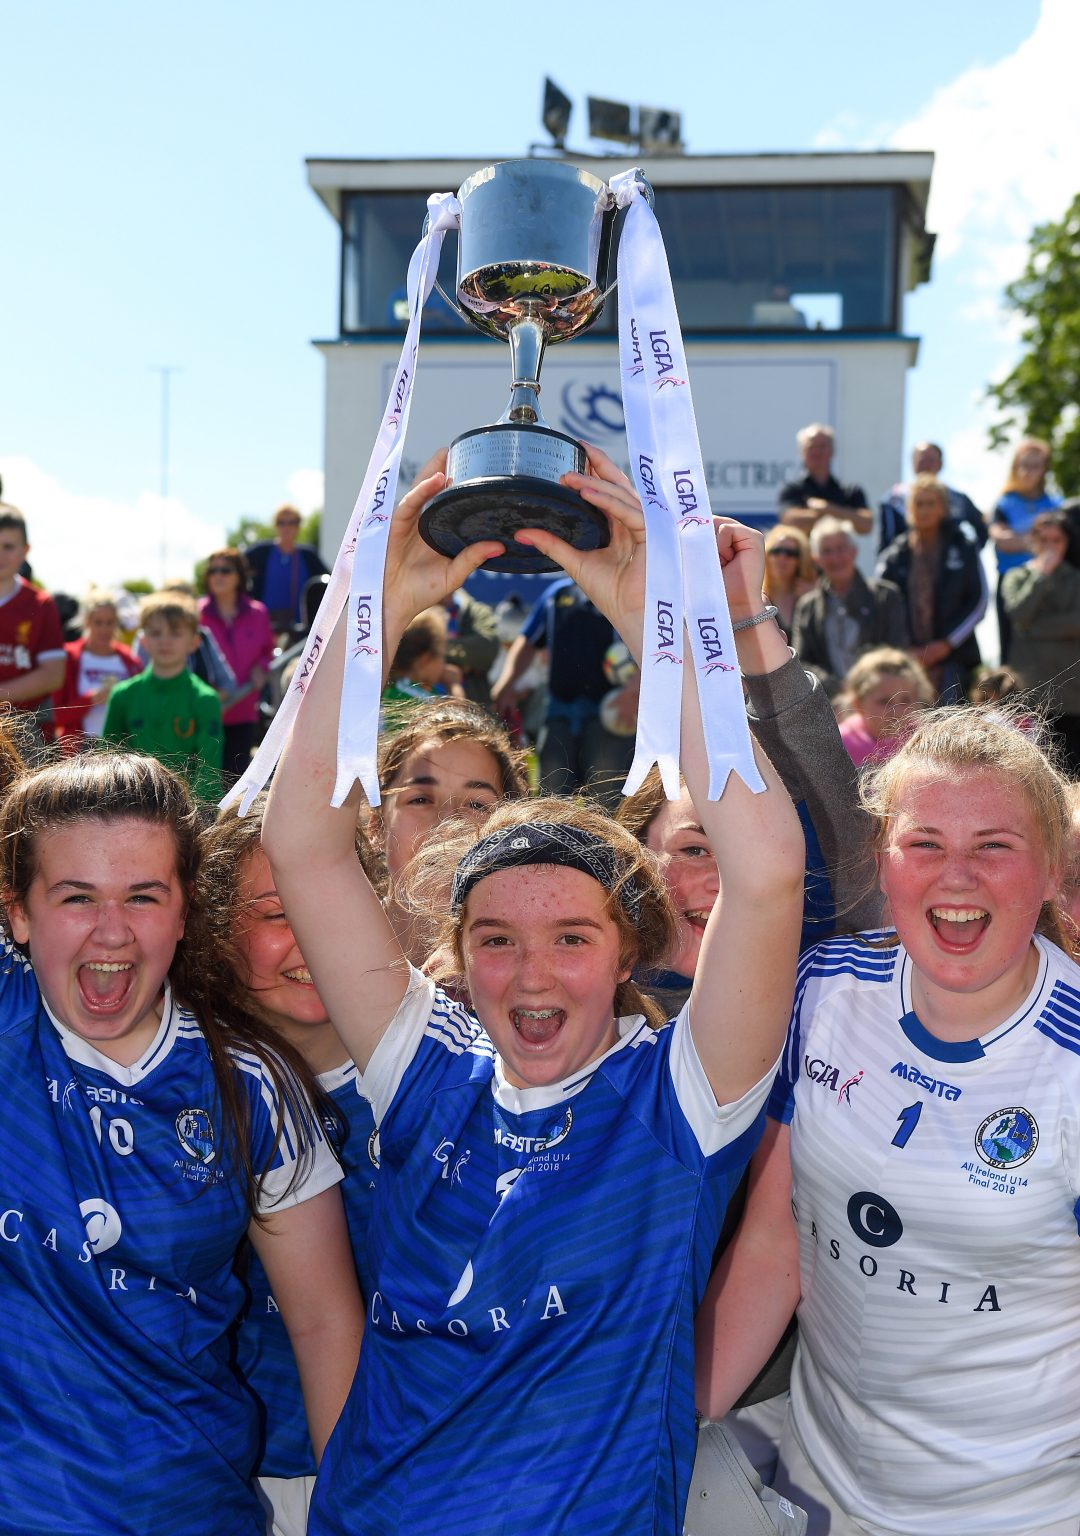 A group of Cavan Players in navy jerseys celebrating with the All ireland trophy after goals in either have helped them beat Dublin in the final